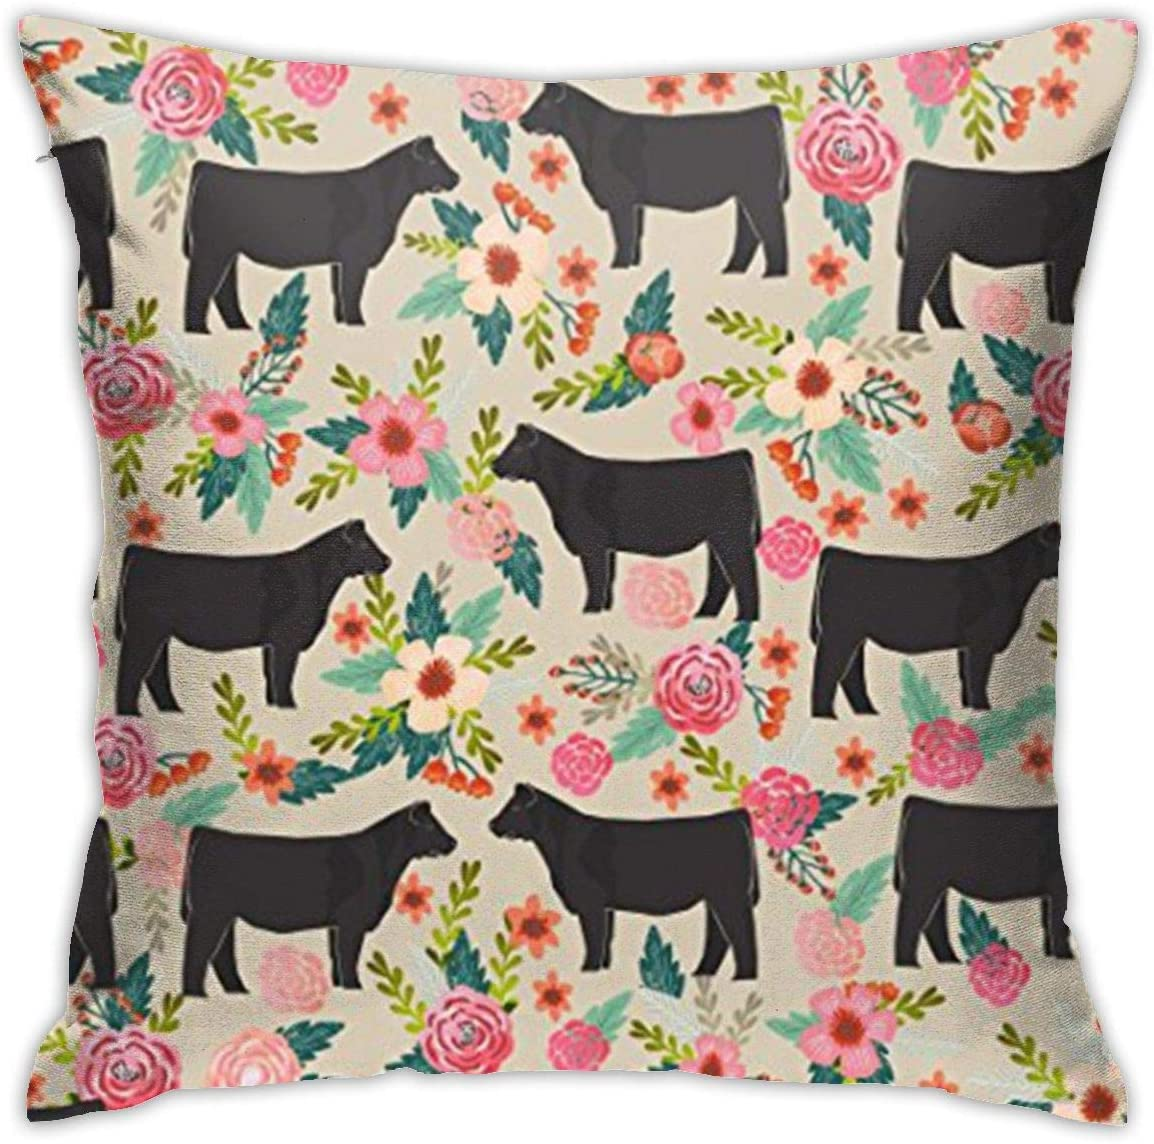 antfeagor Show Steer Cows Farm Barn Florals Design Pillow Covers Decorative 18x18 in Daily Sofa Throw Pillow Case Cushion Covers Zippered Pillowcase